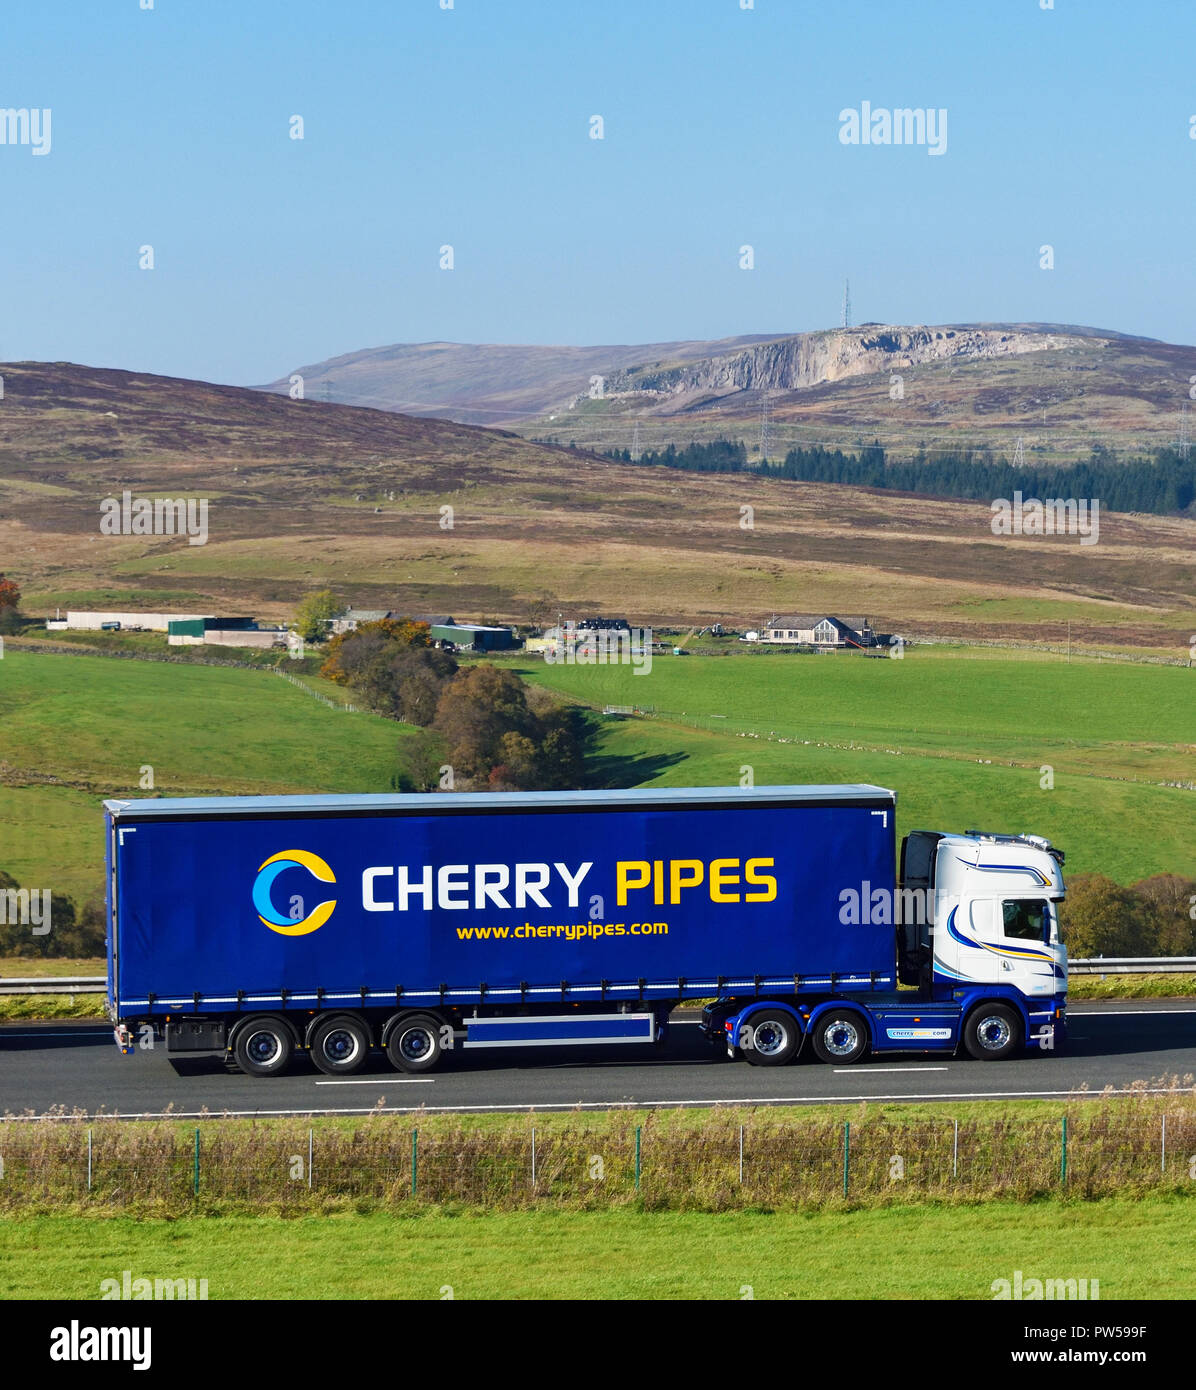 cherry pipes limited hgv